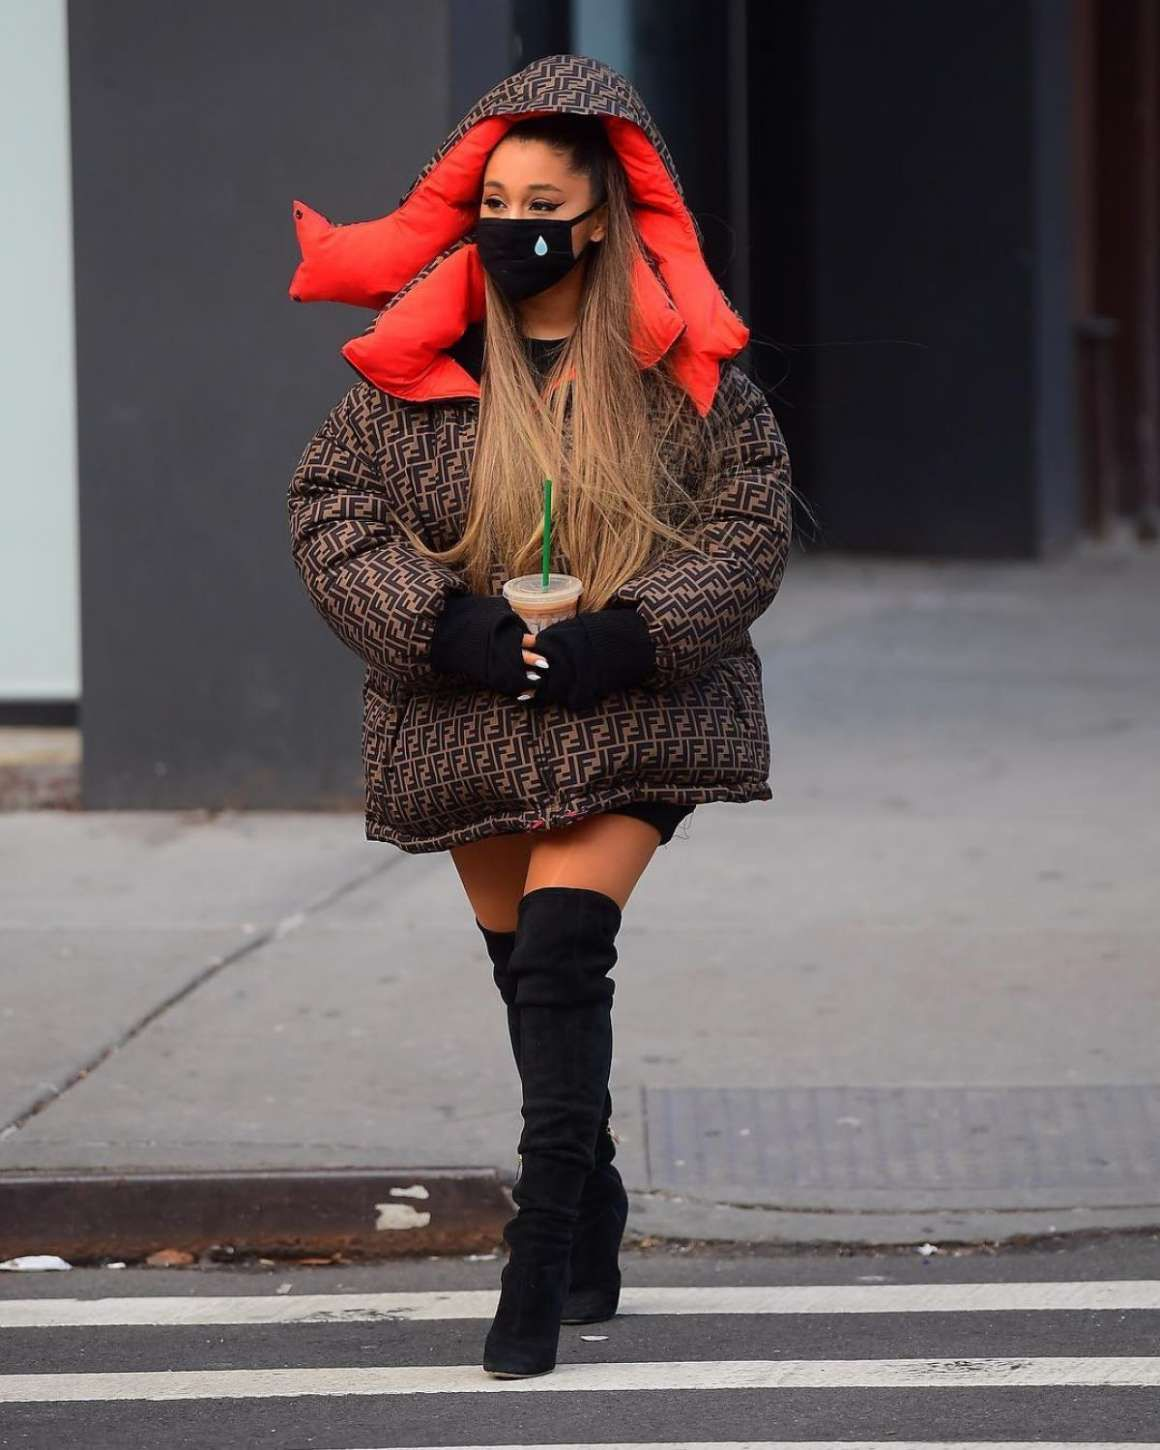 Ariana Grande Out in New York. #ArianaGrande #NewYork